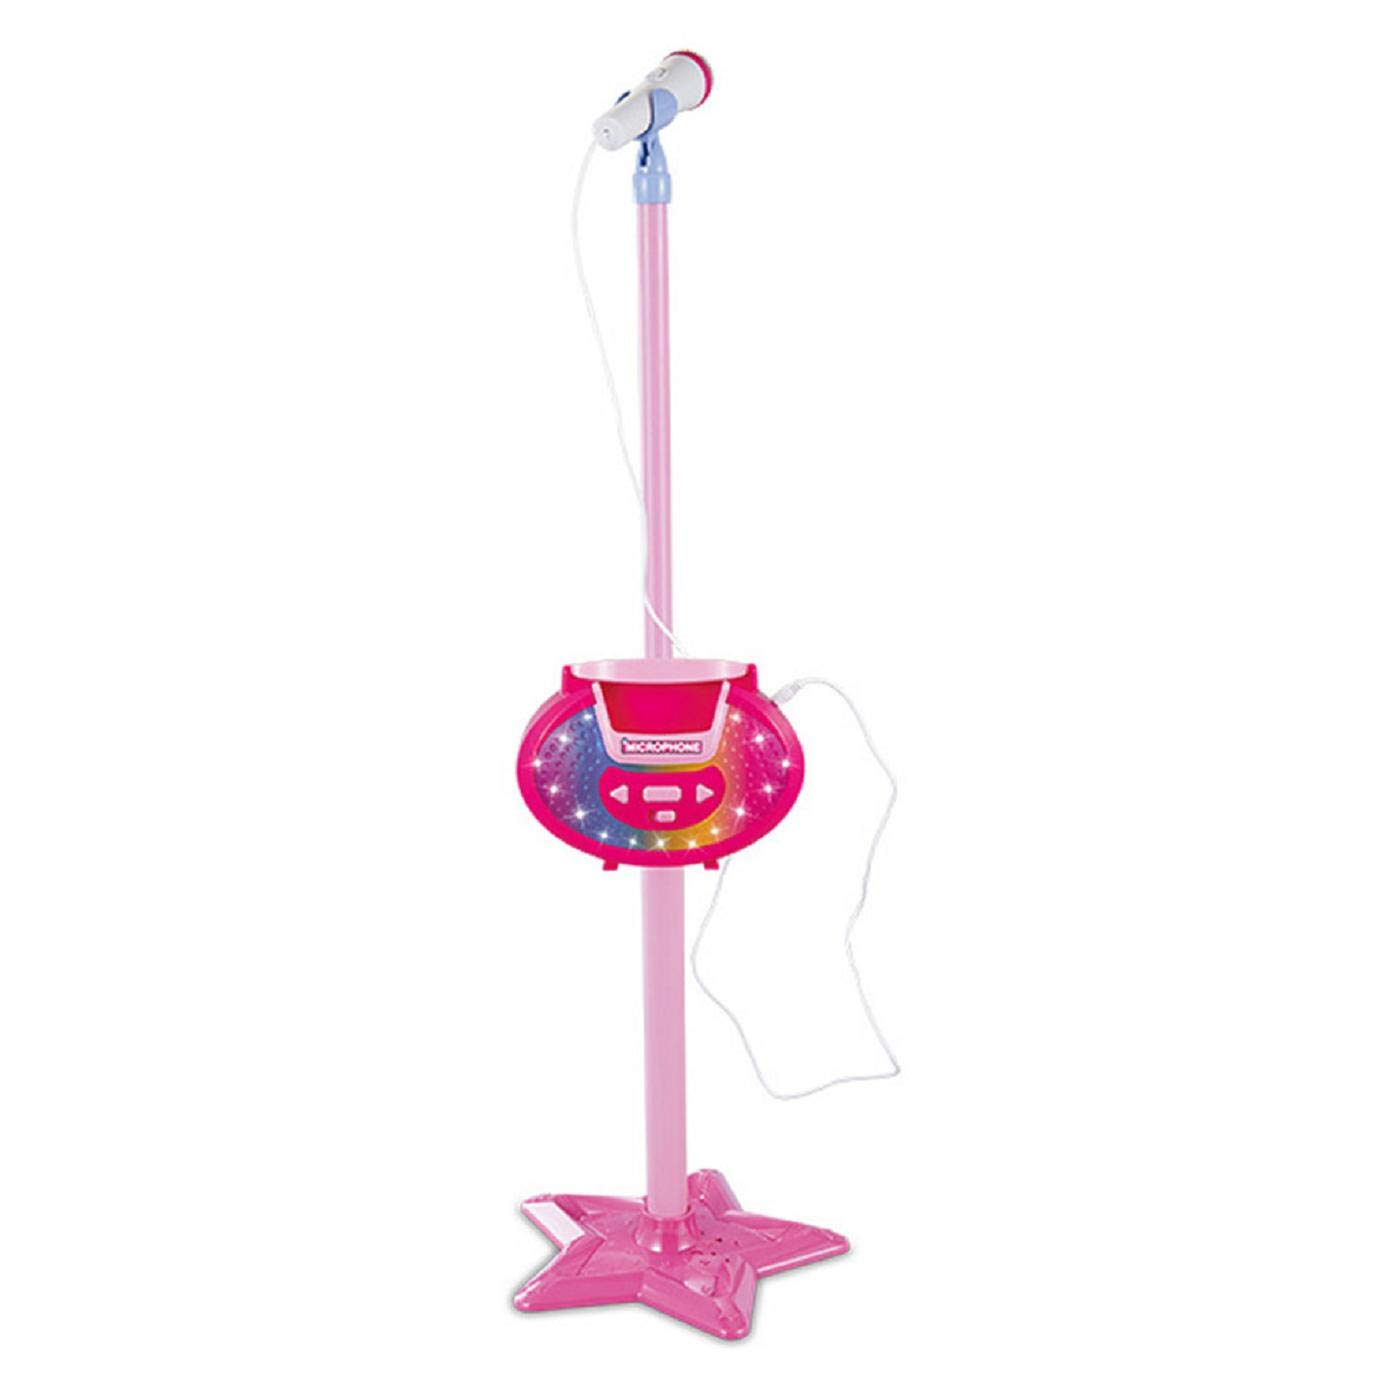 Putars Kids Girls Mp3 KaraokeMicrophone Adjustable Stand Light Sound,Music Sing Along with Flashing Stage Lights and Pedals for Fun,Microphone and Mic Stand - Online Exclusive by Putars toy (Image #1)